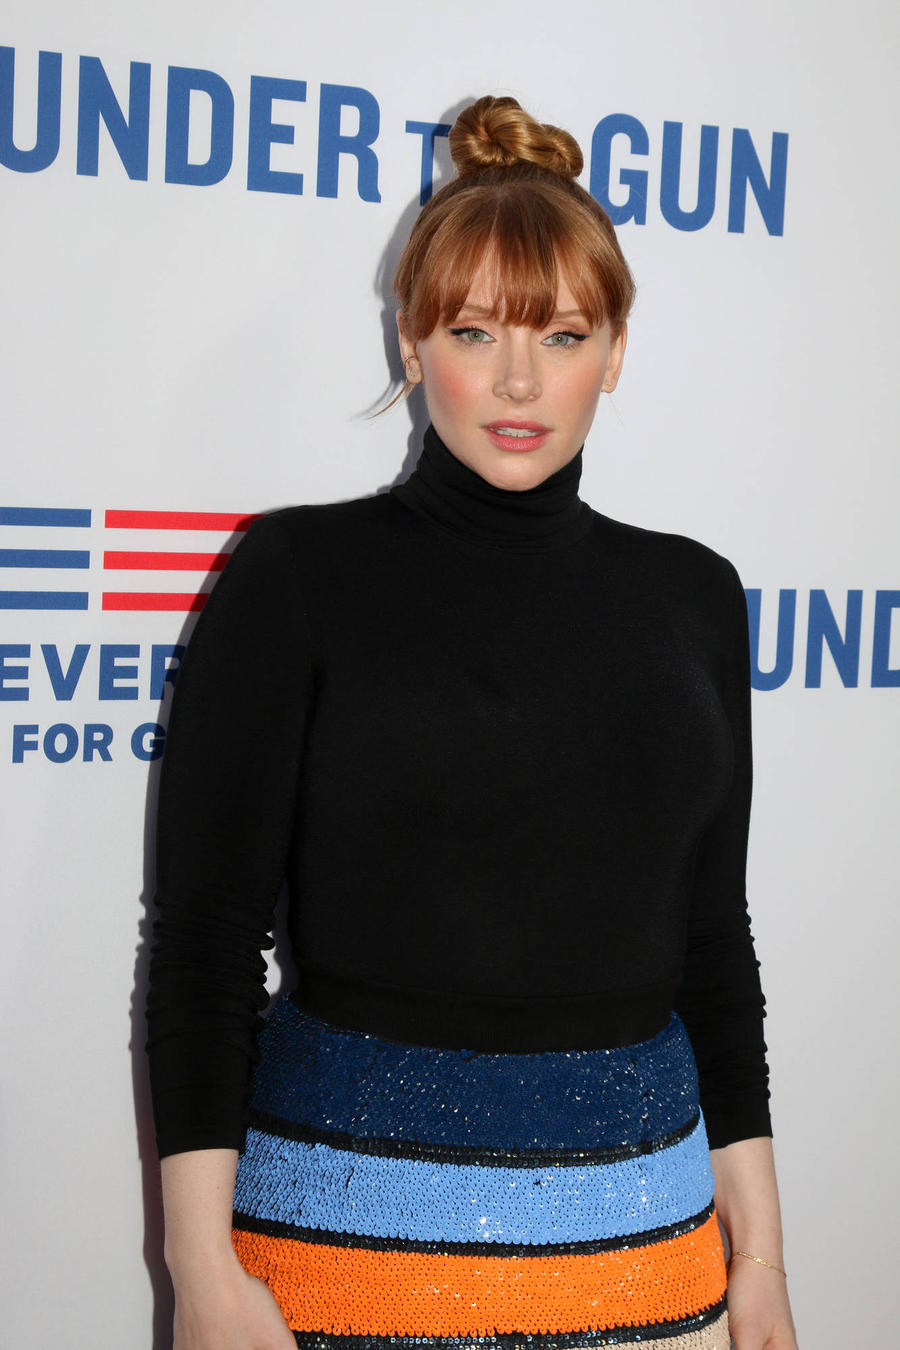 Bryce Dallas Howard: 'I'm Always On My Best Behaviour'